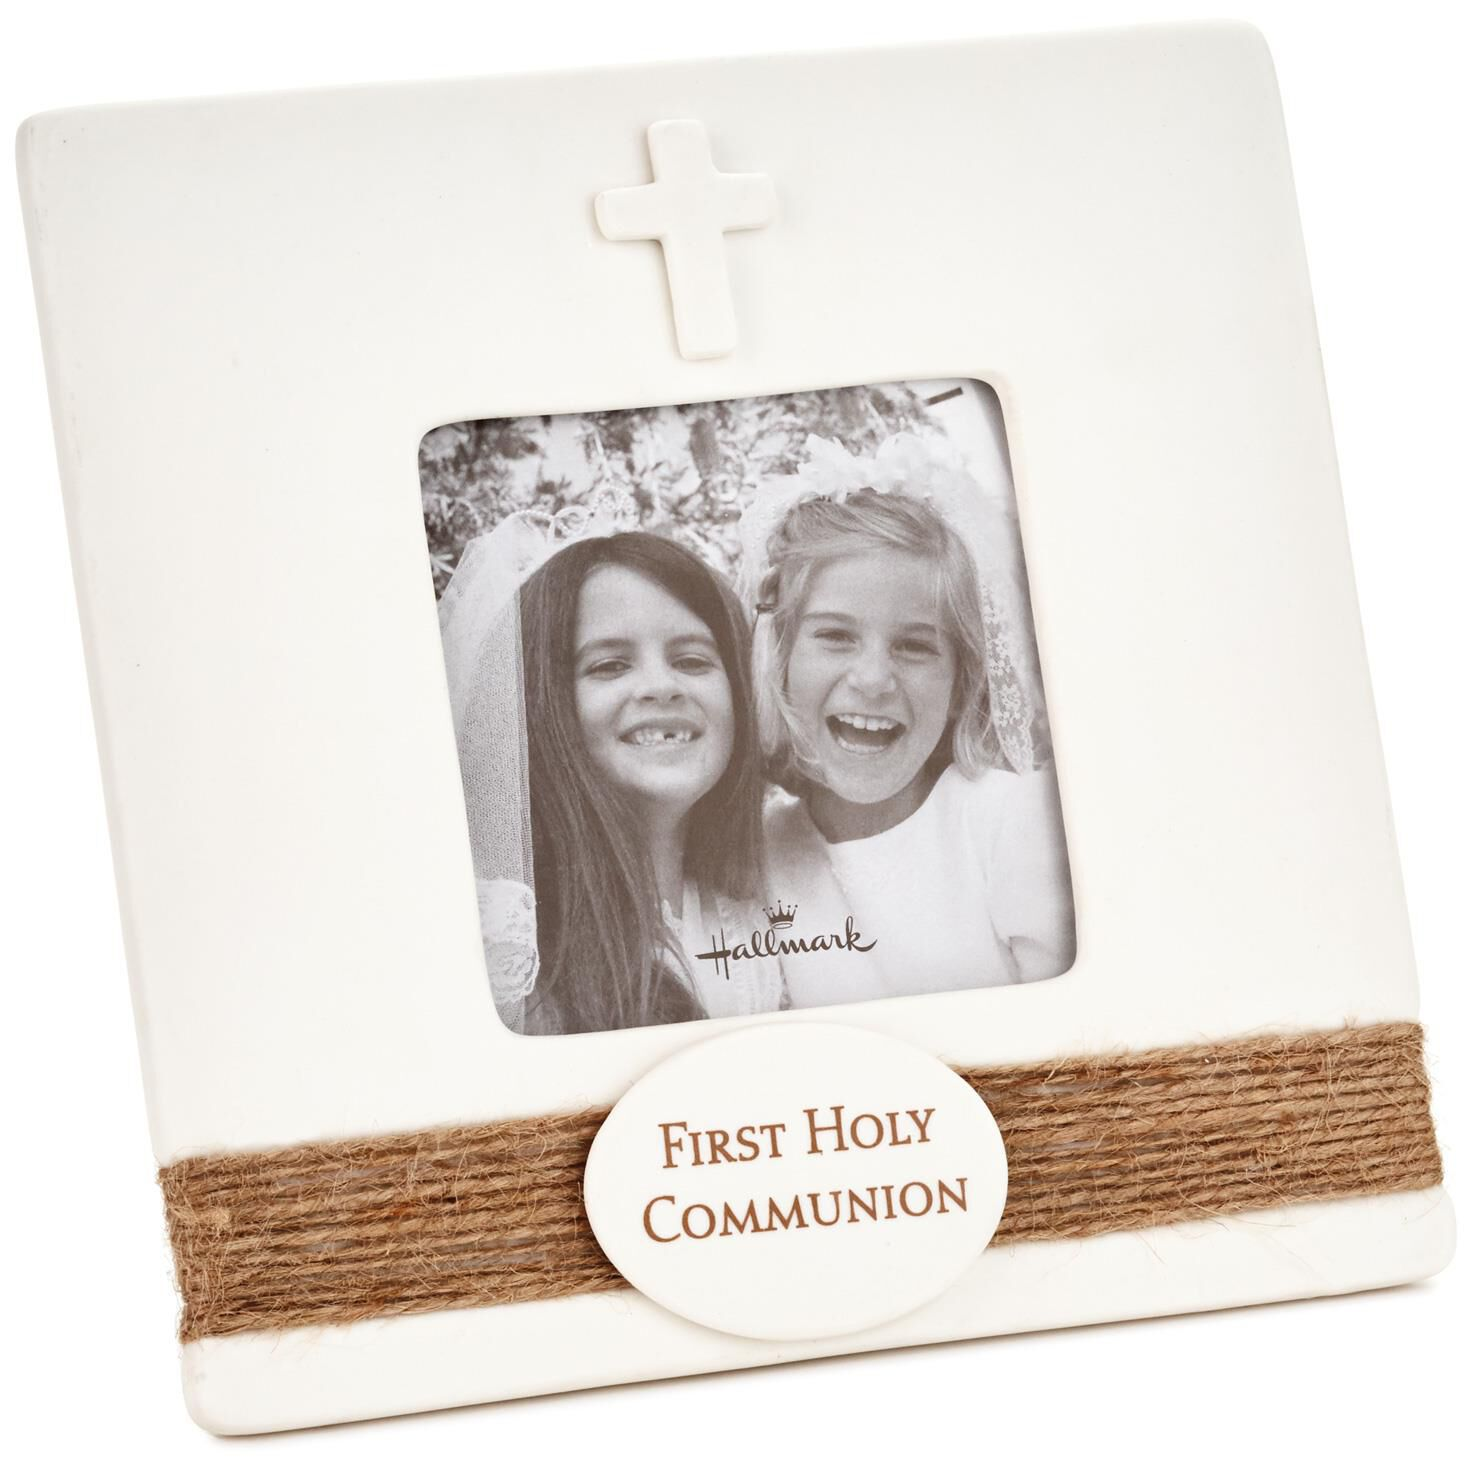 First Holy Communion Picture Frame 3x3 Picture Frames Hallmark